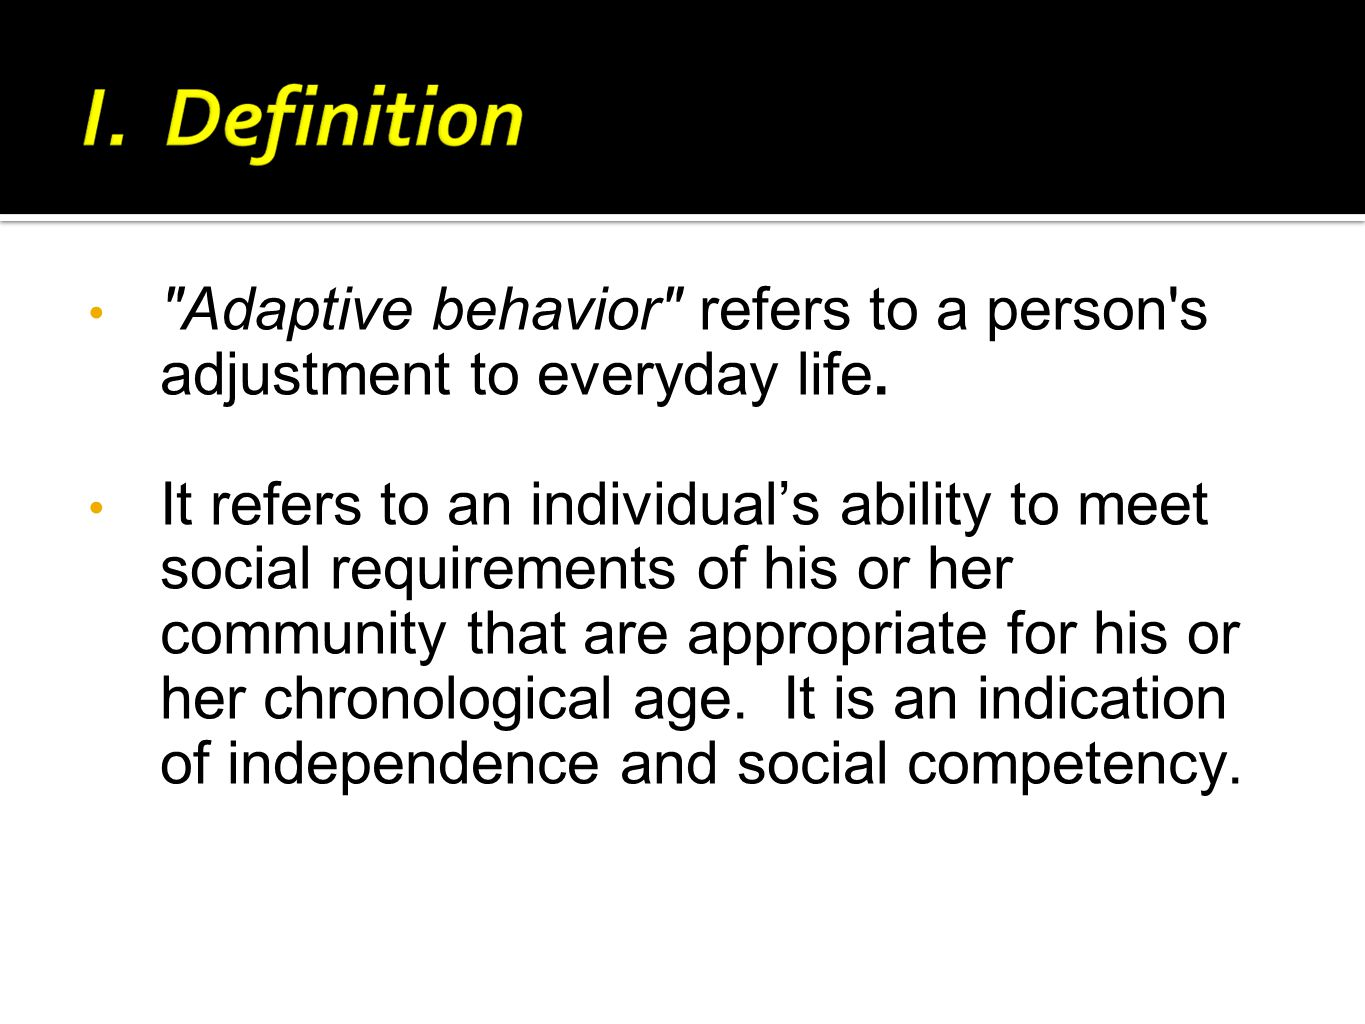 Adaptive behavior refers to a person s adjustment to everyday life.